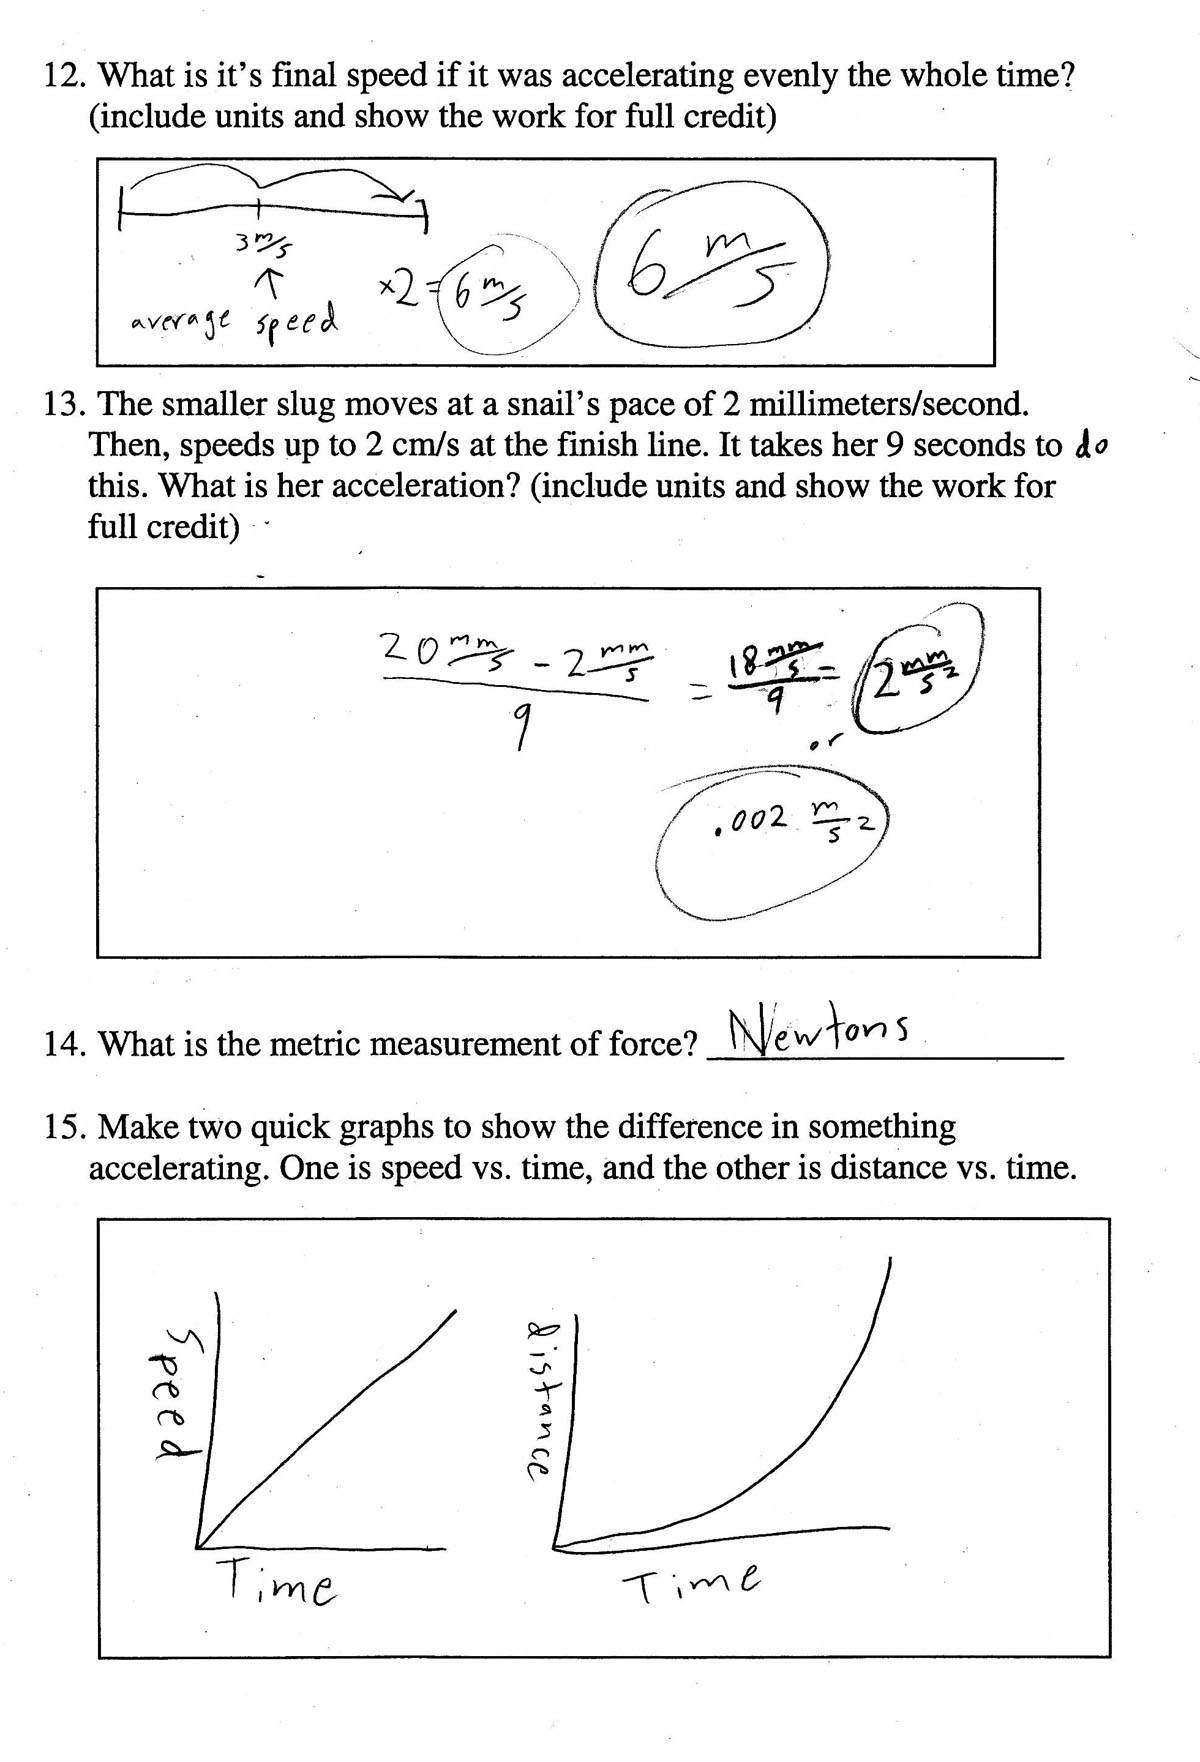 8th grade science study guide for final exam